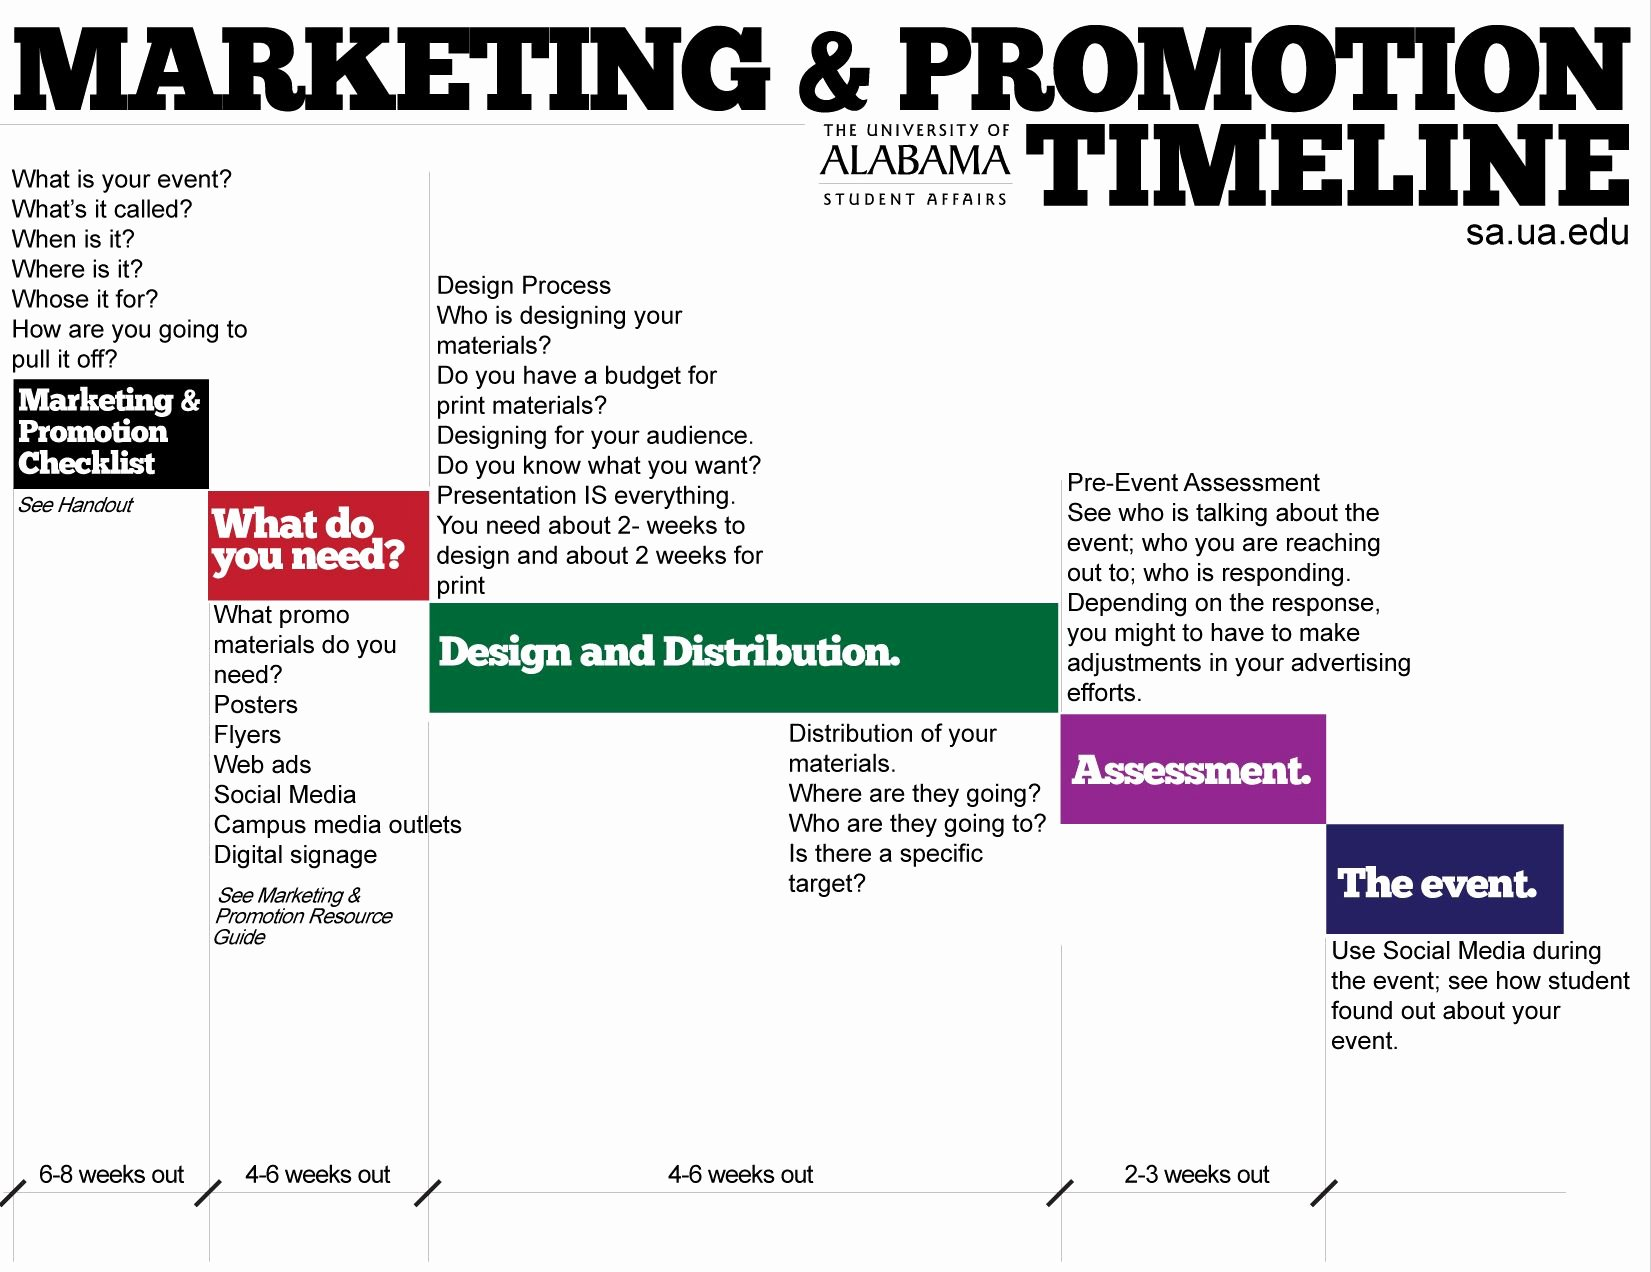 Marketing Campaign Timeline Template Awesome event Marketing Plan Google Search